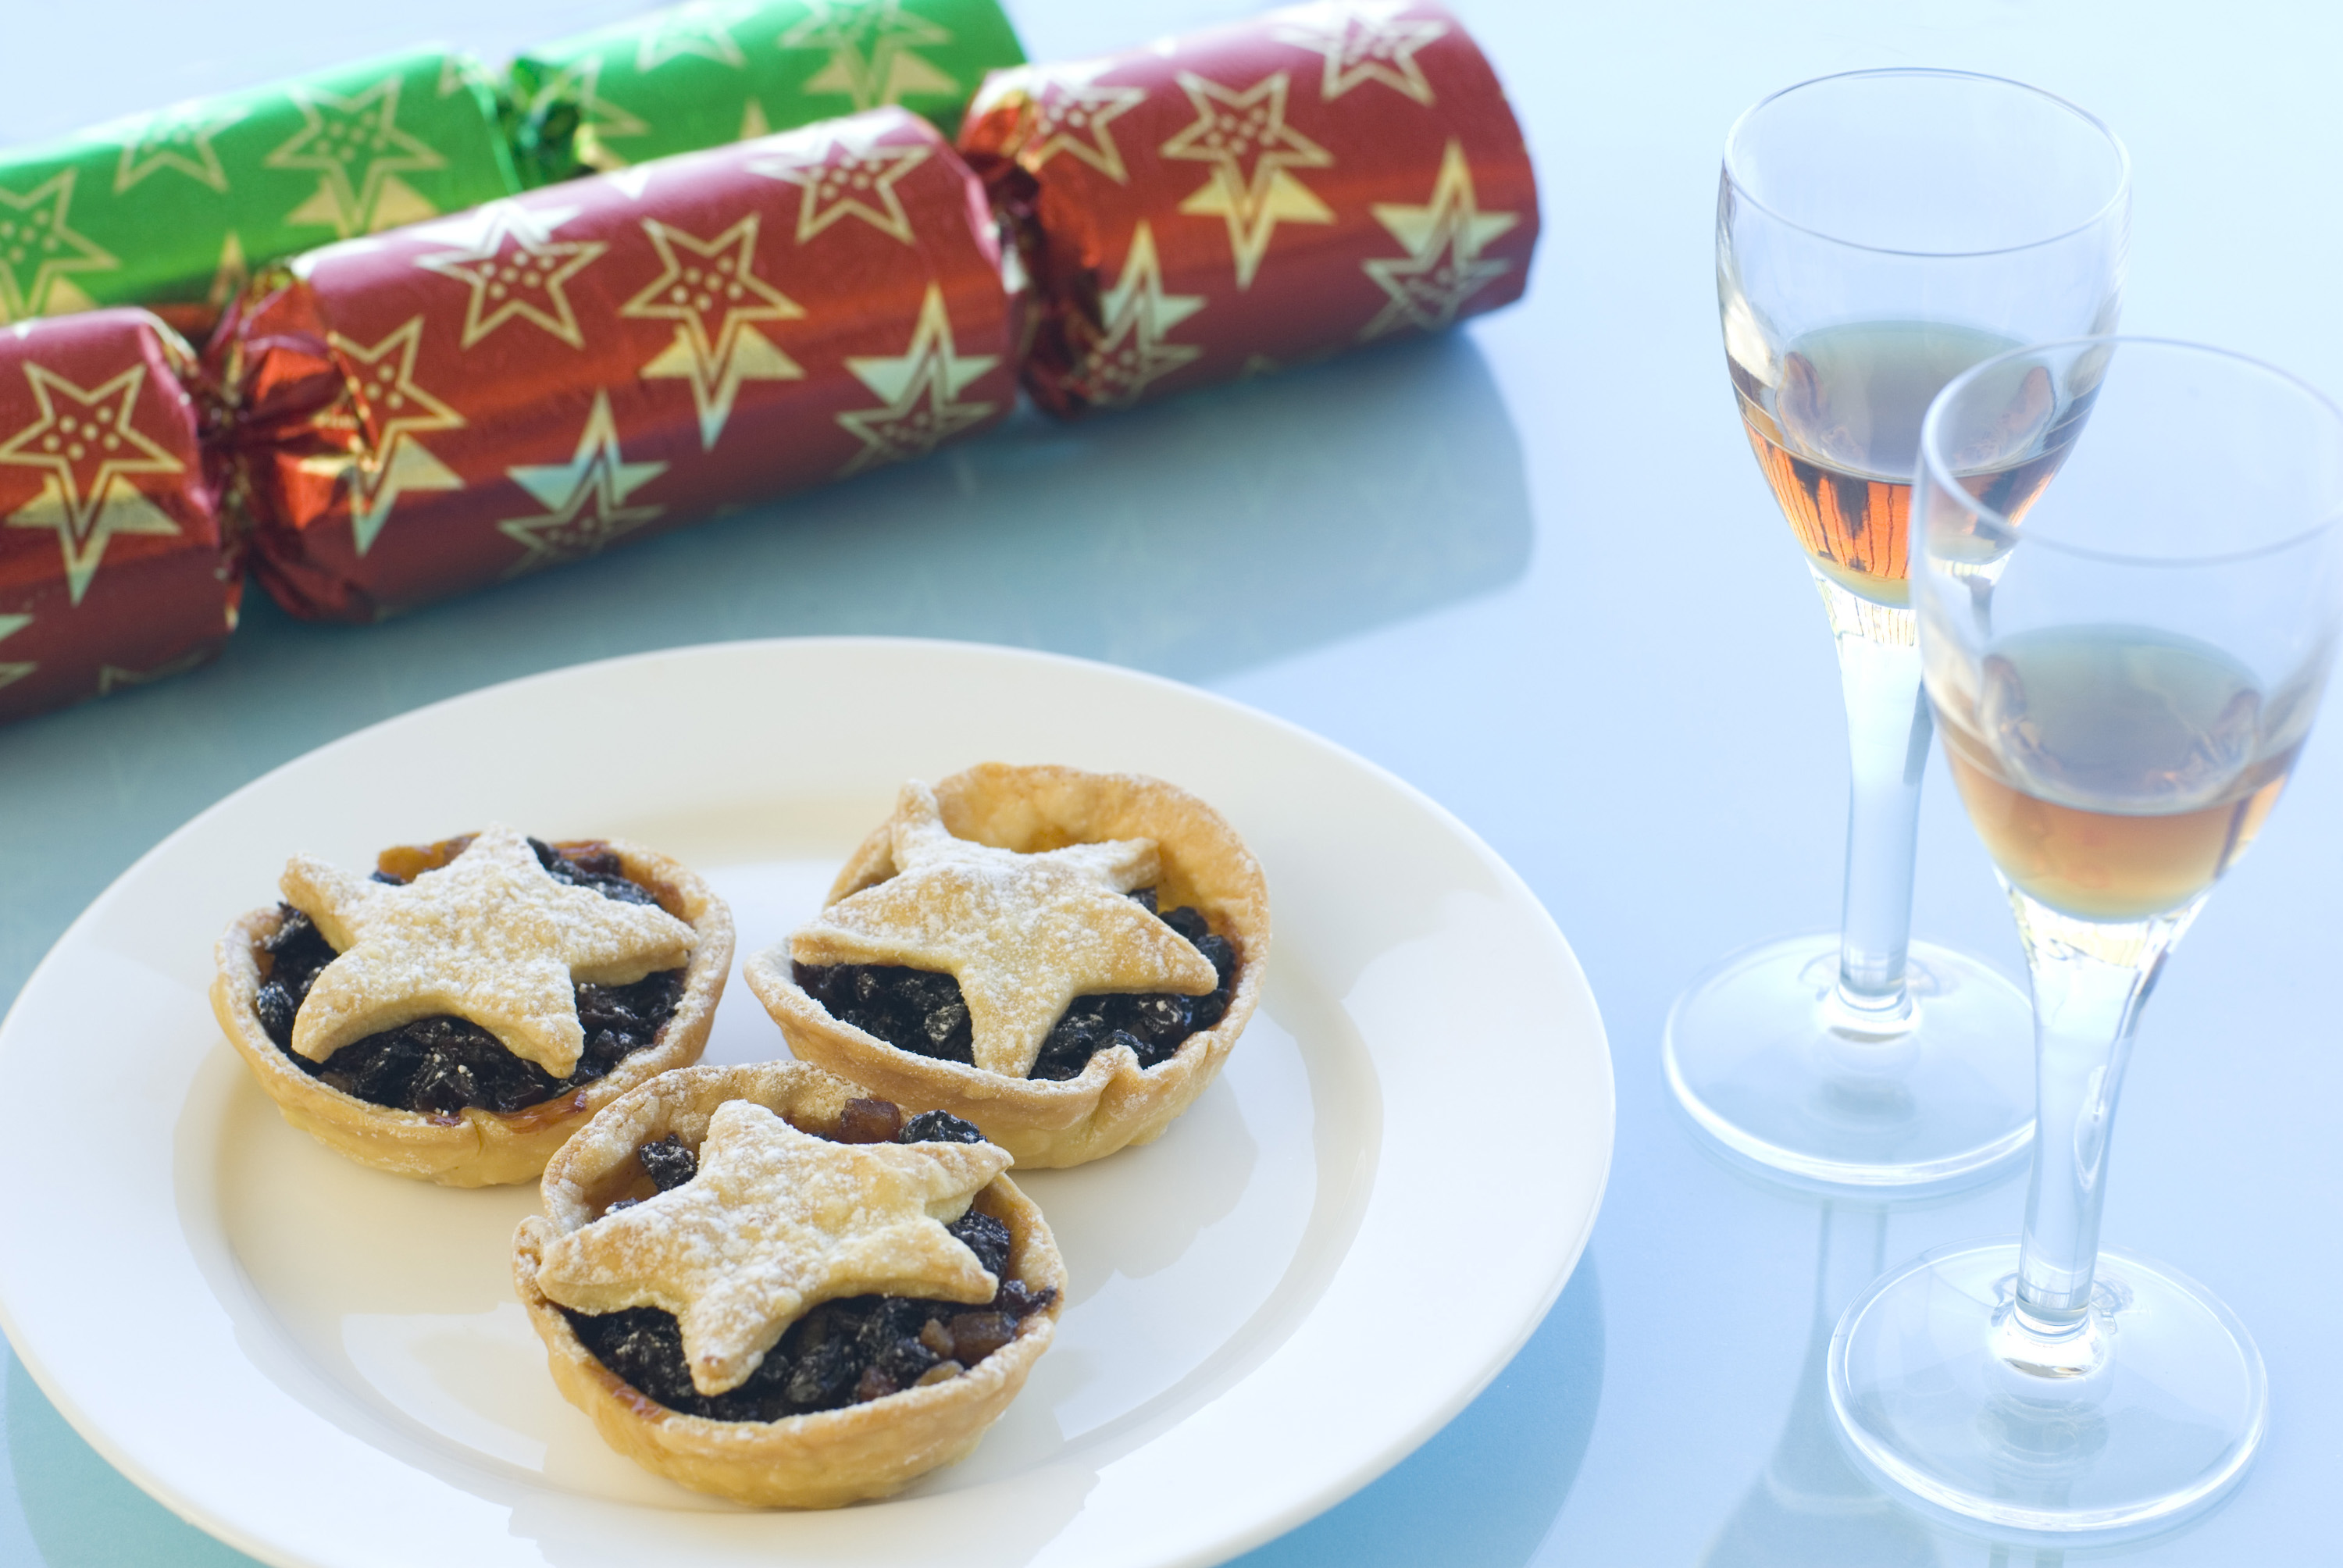 a plate of christmas mince pies with star shaped pastry tops